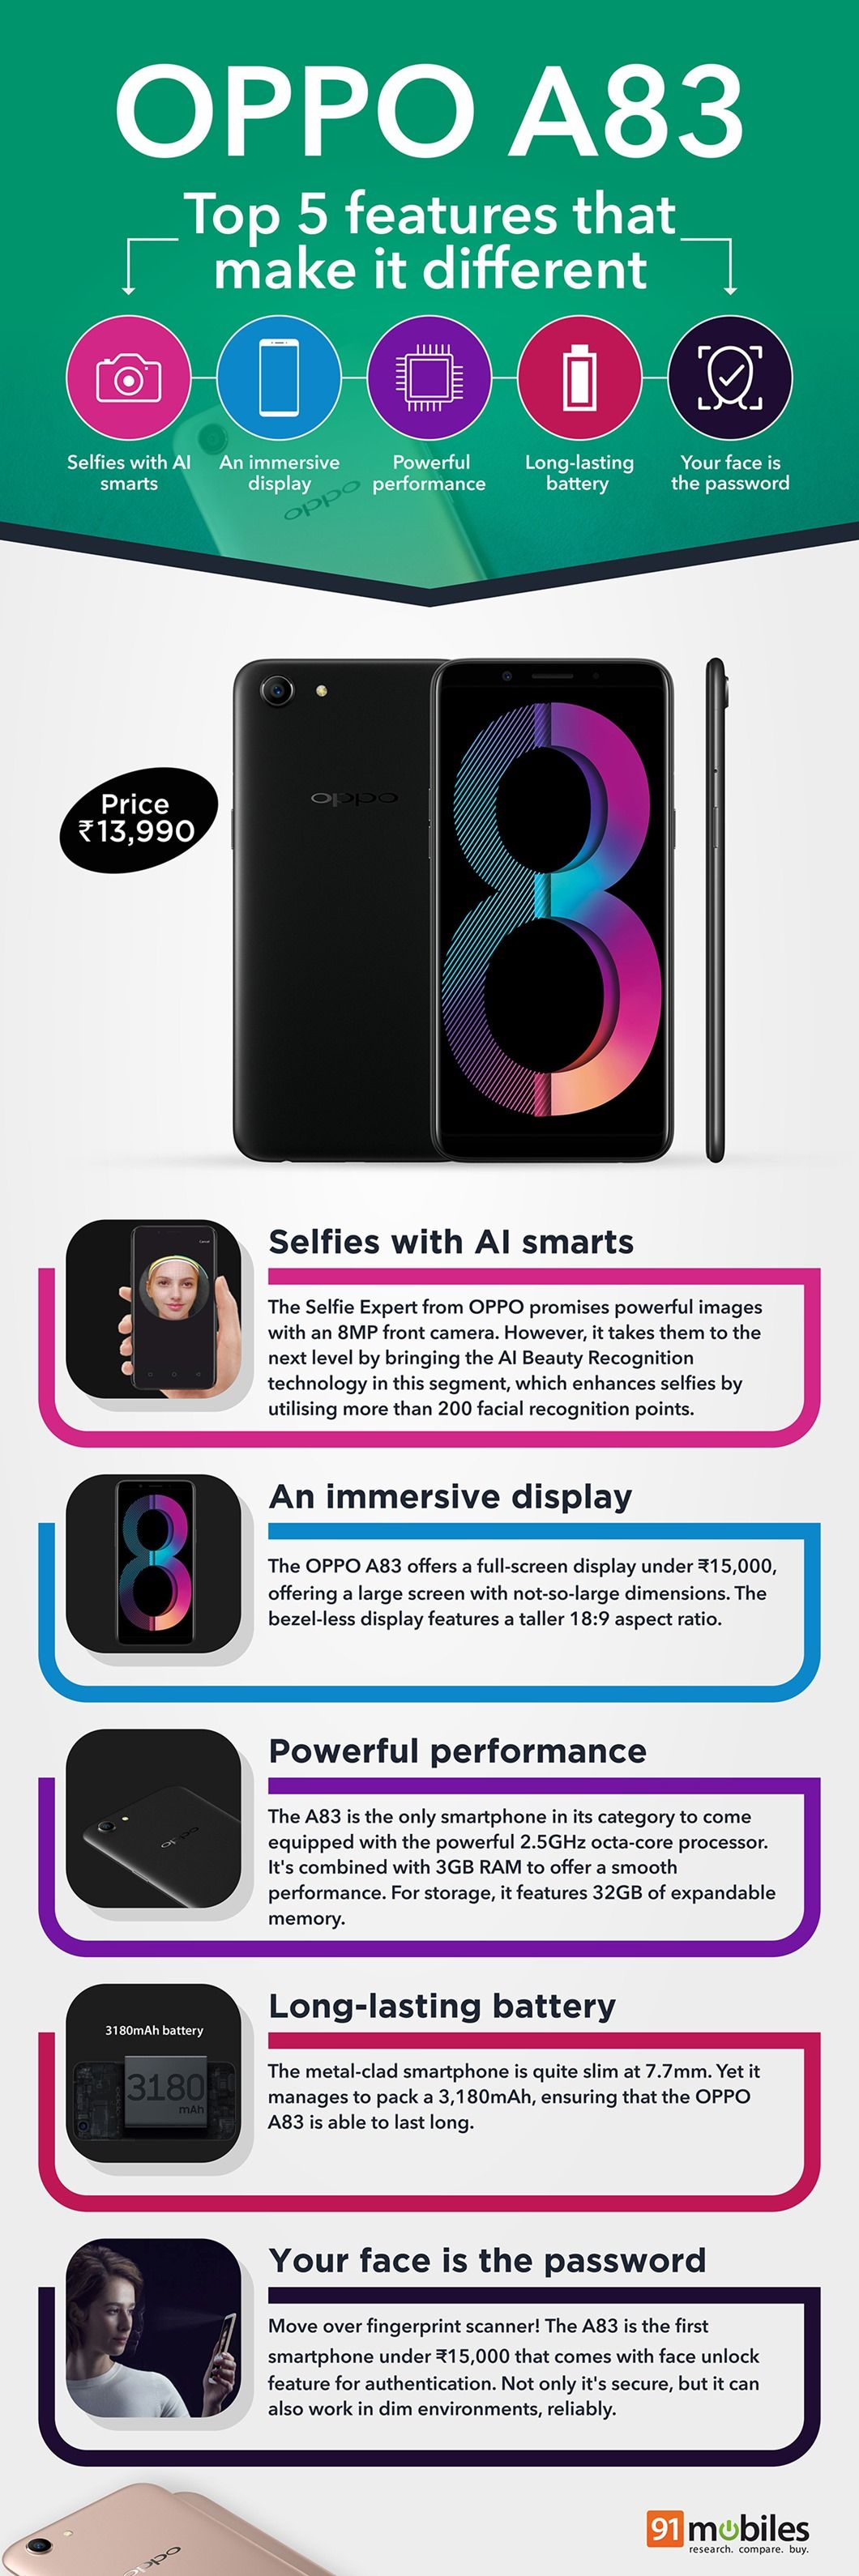 Top 5 features that make the OPPO A83 different [Infographic